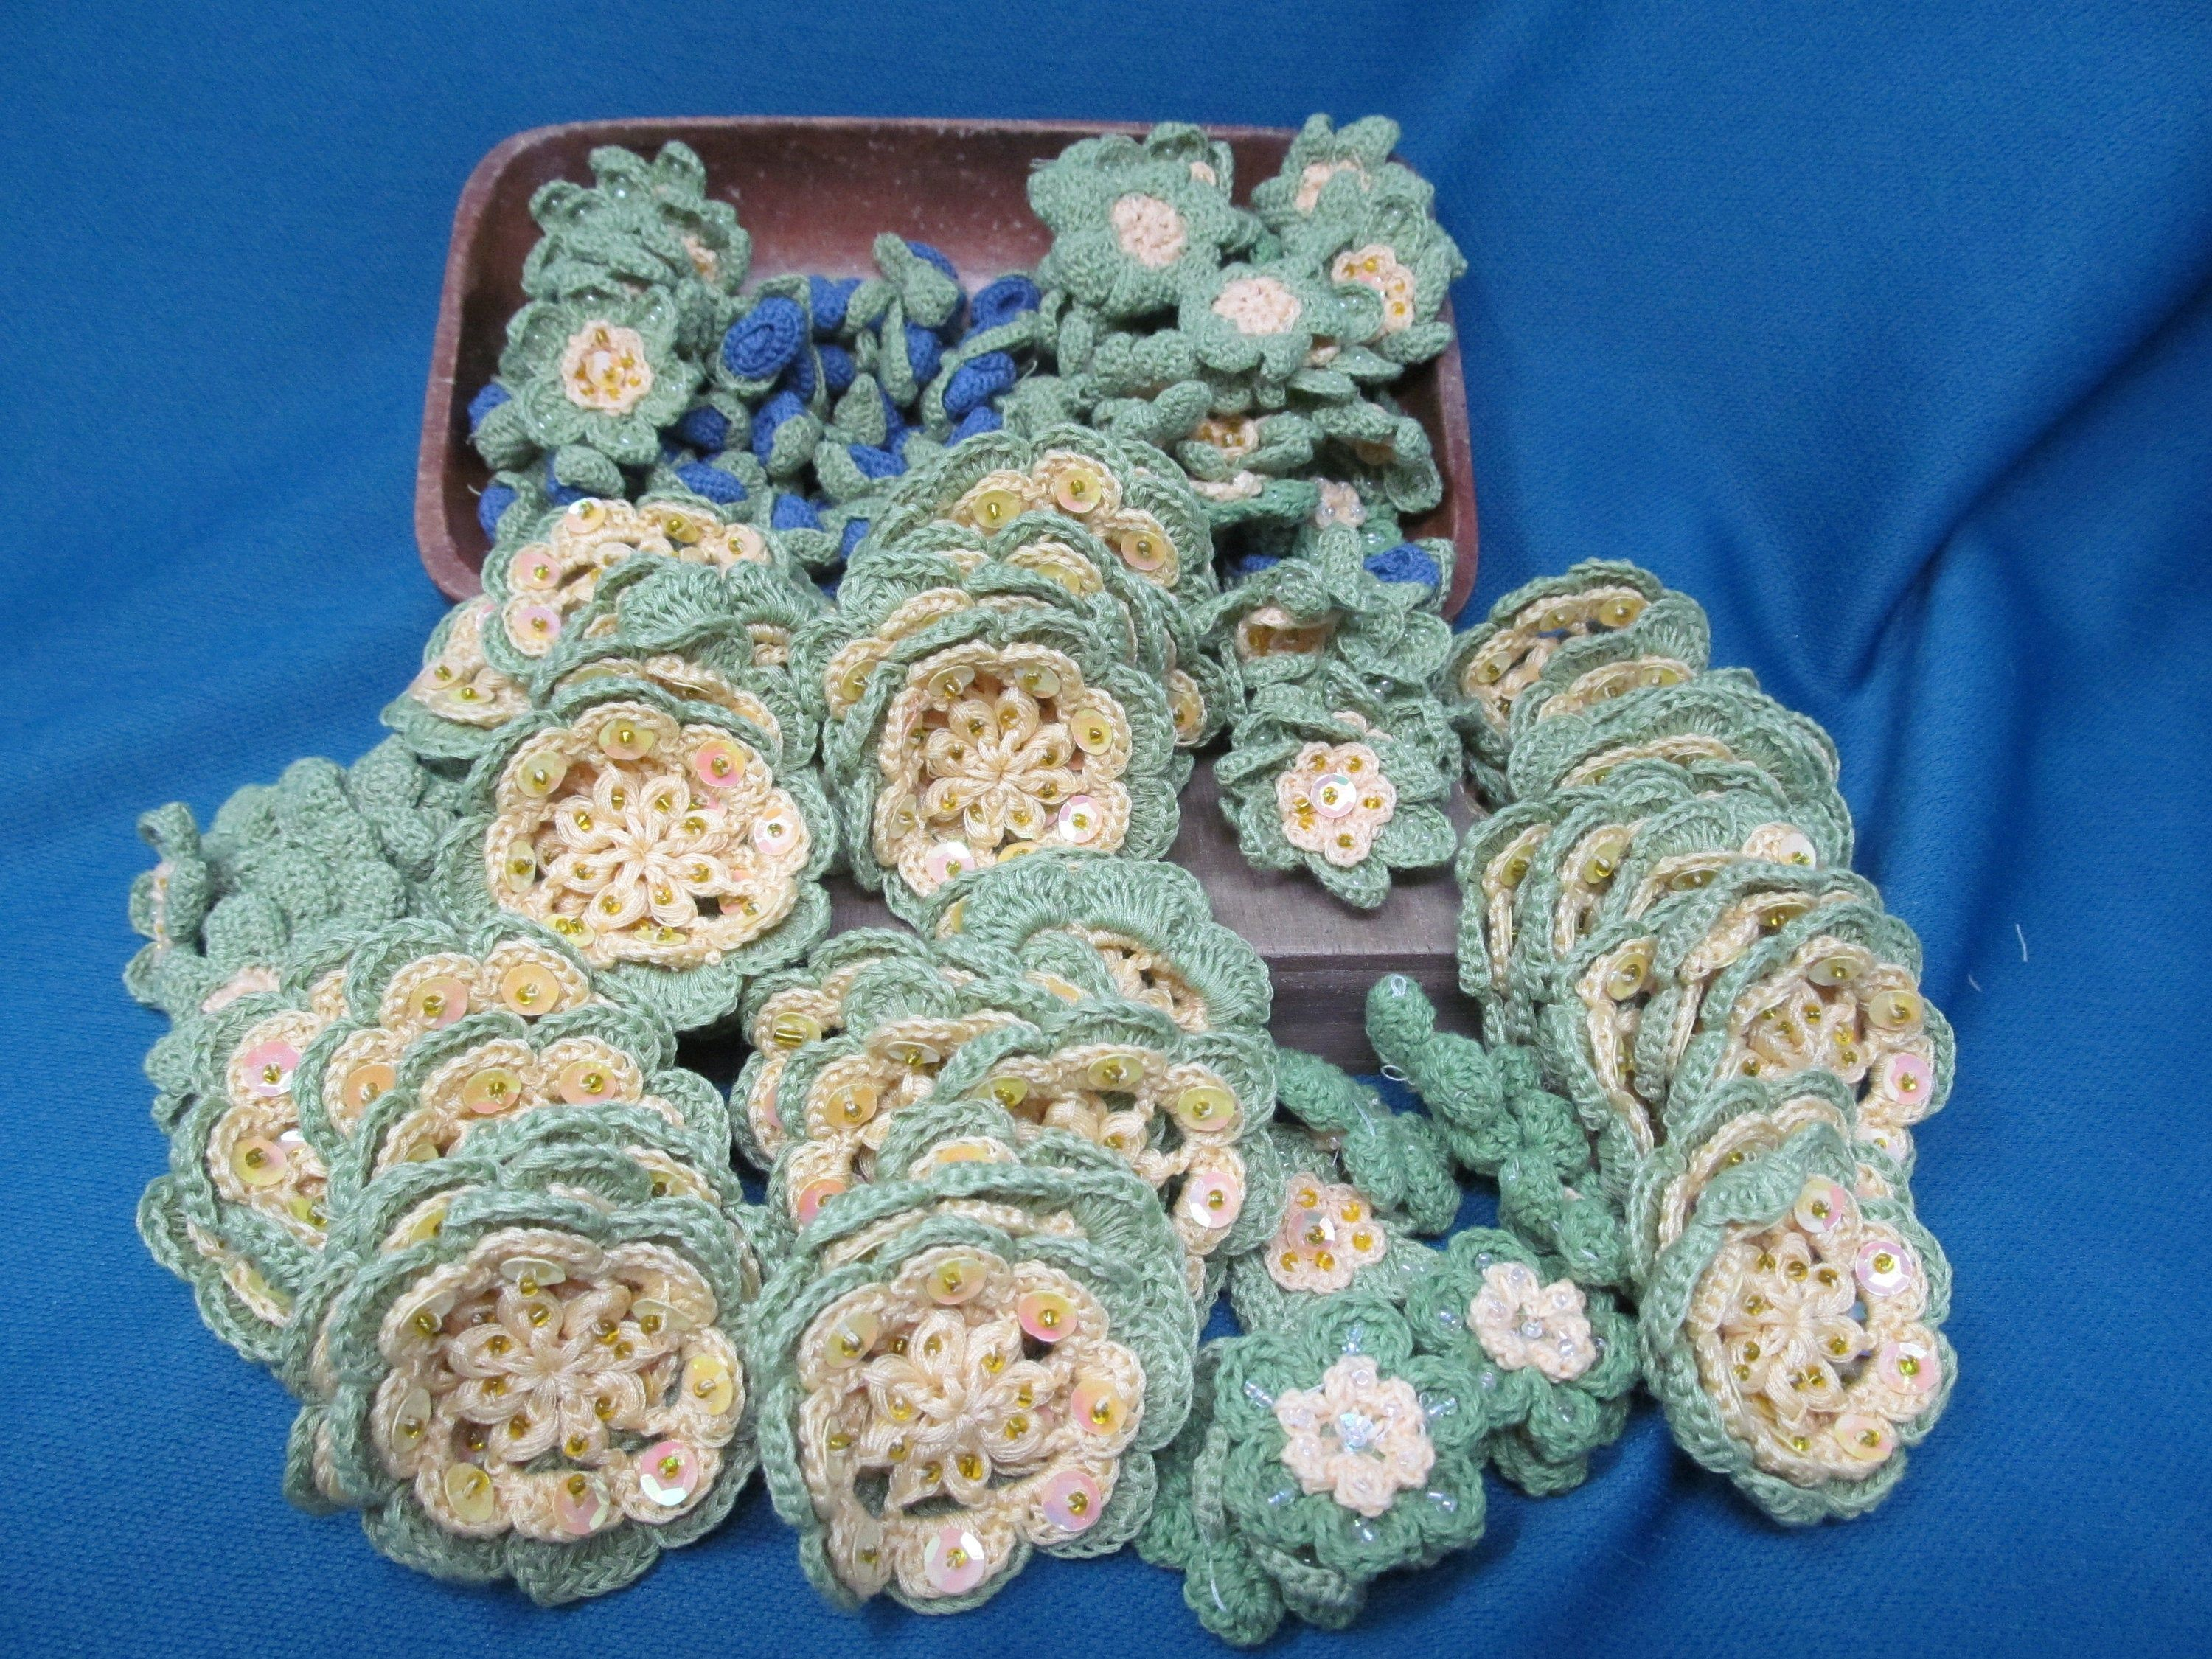 200 Piece Lot of Crochet Flowers, Green and Yellow